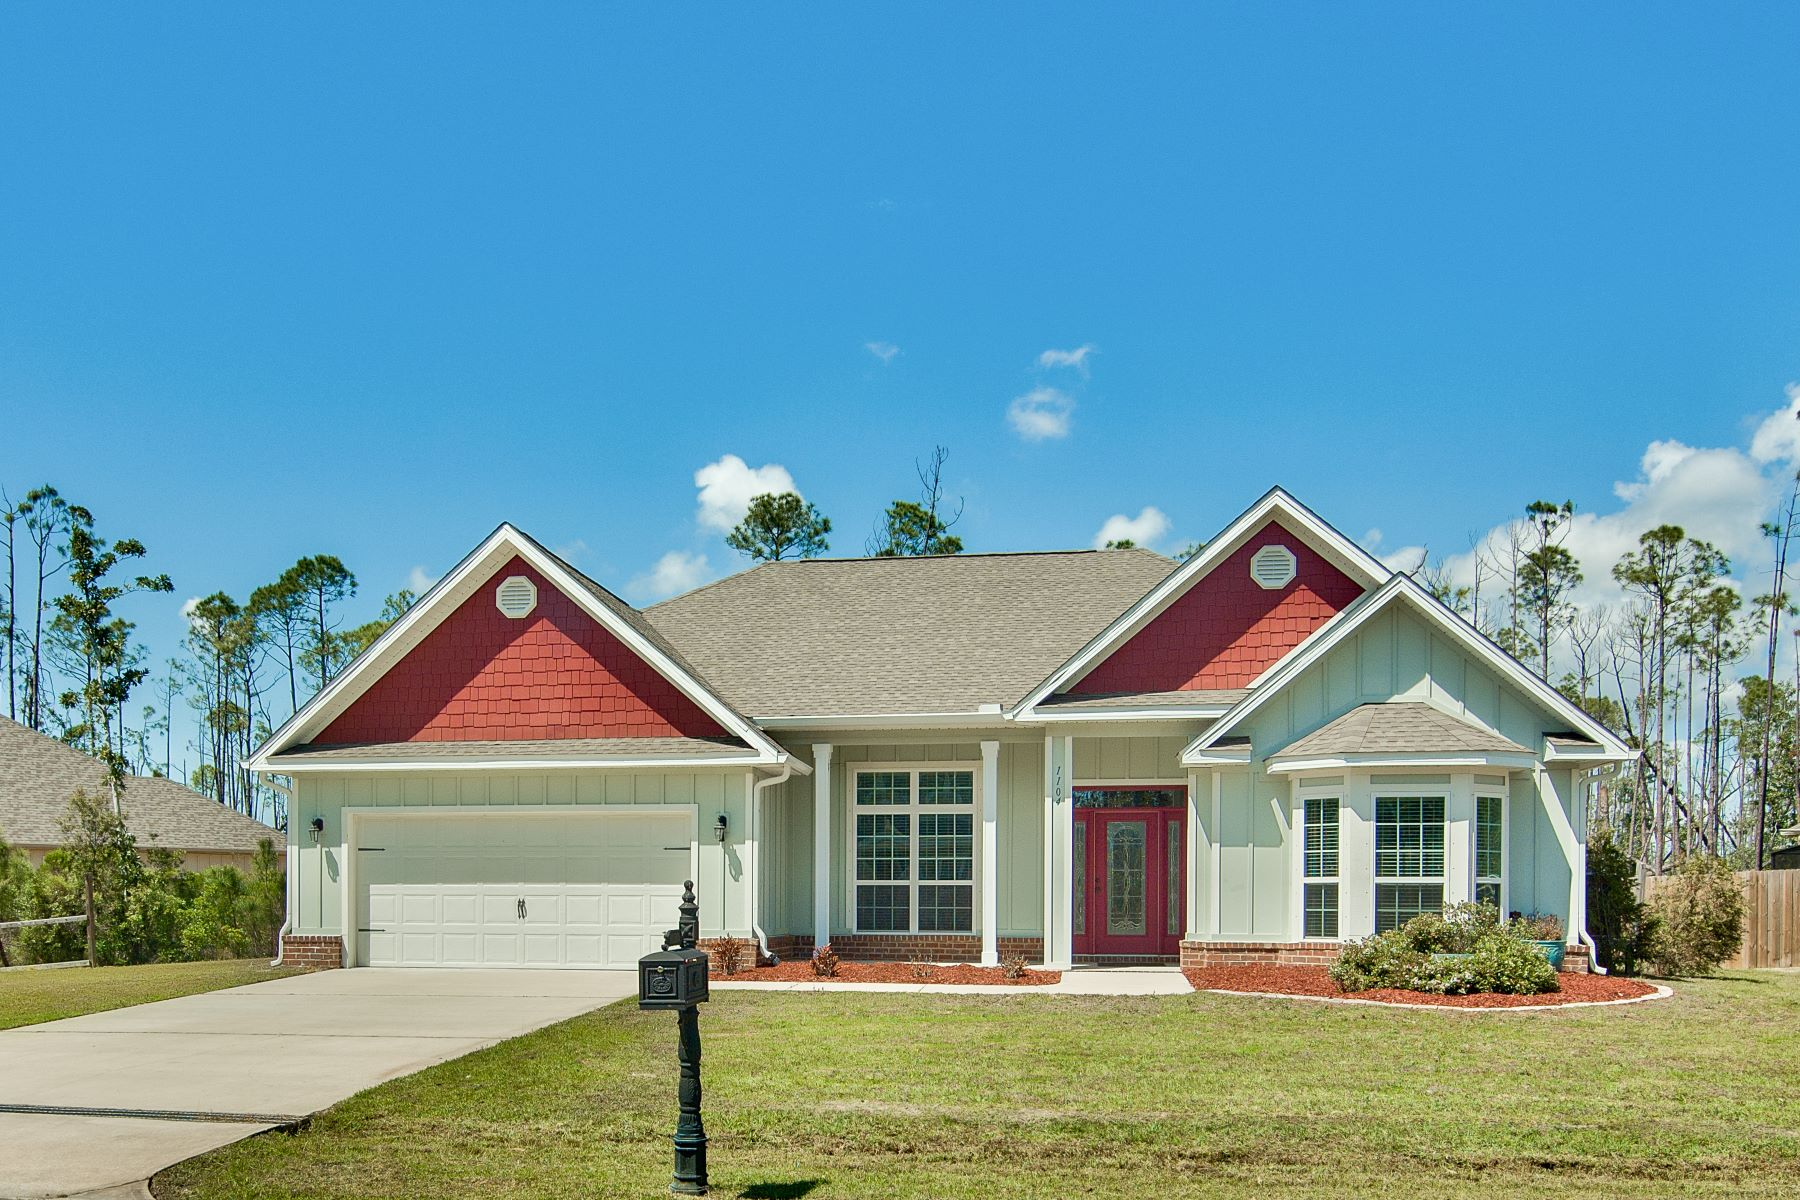 Single Family Homes for Active at Newer Home in Gated Waterfront Community Bordering Laird Bayou 1104 Zephyr Way Panama City, Florida 32404 United States